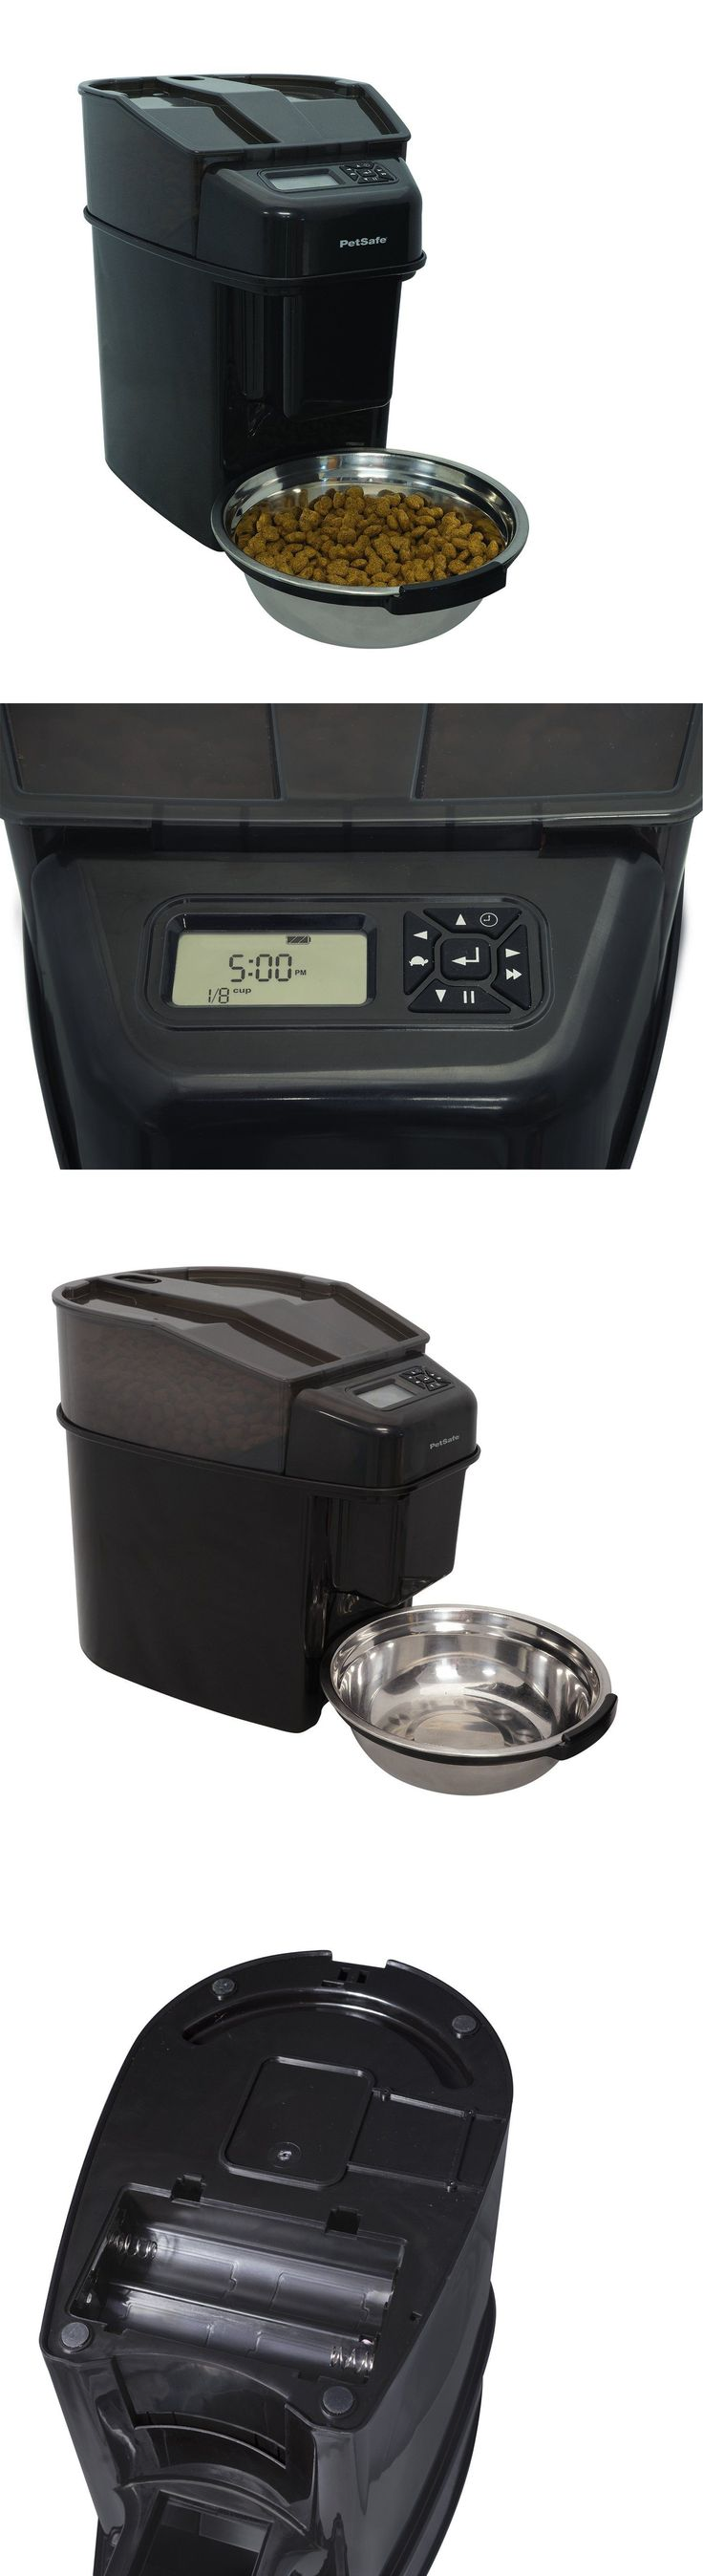 Dishes Feeders and Fountains 177789: Petsafe Healthy Pet Simply Feed 12 Meal Automatic Feeder BUY IT NOW ONLY: $129.95